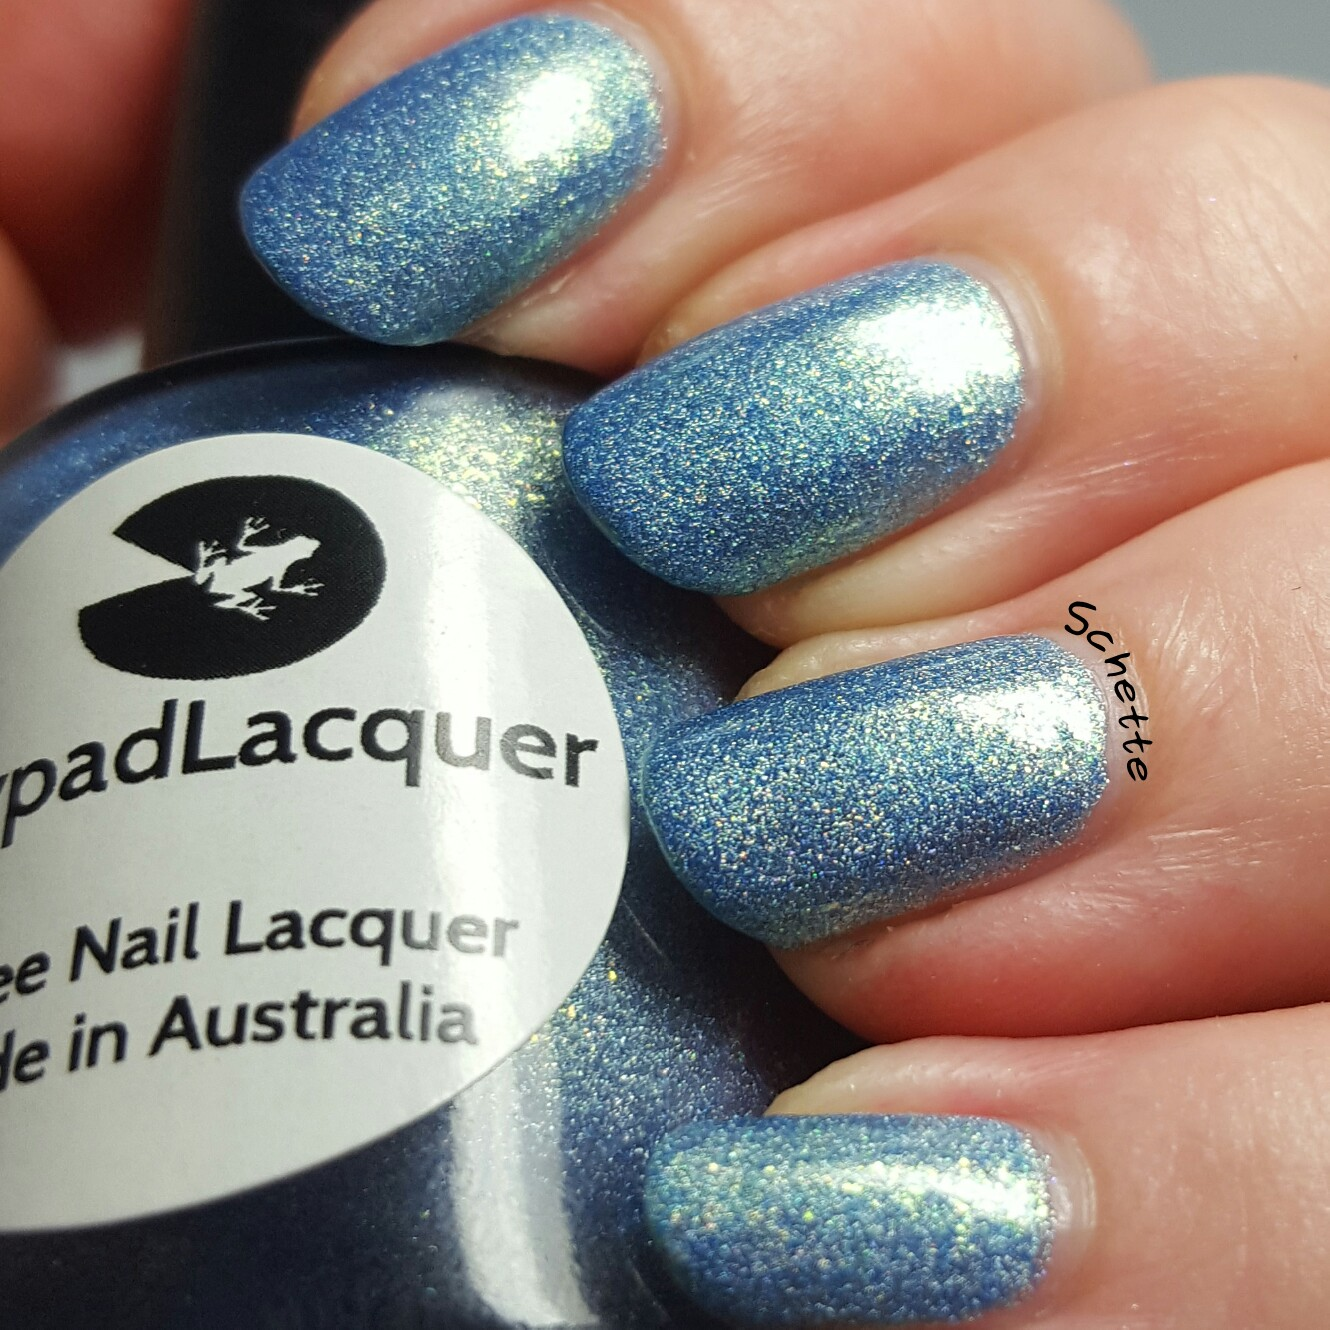 Lilypad Lacquer - I got blues babe